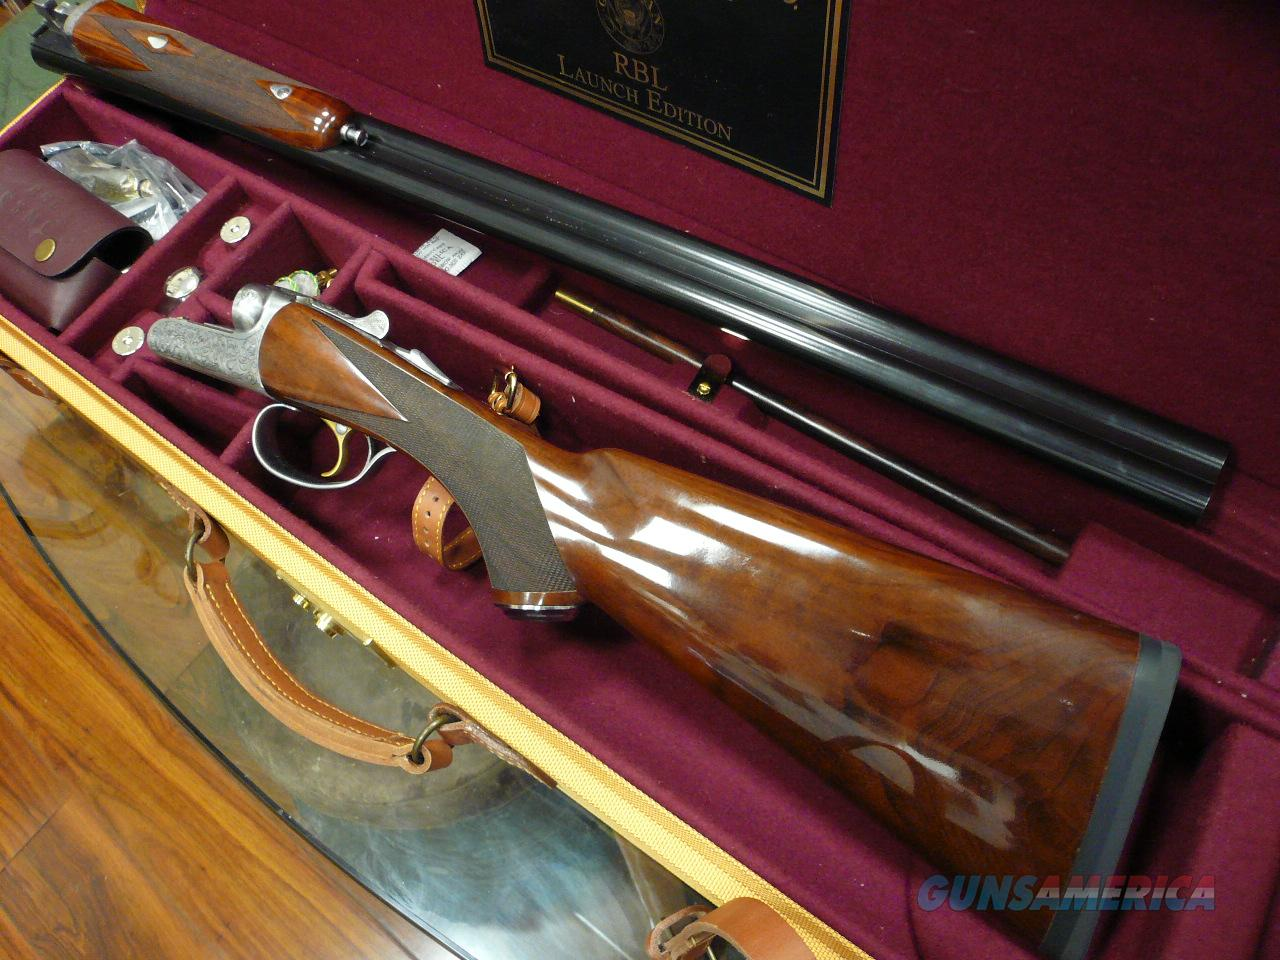 "RBL LAUNCH EDITION 20GA 28""BBL  Guns > Shotguns > Connecticut (Galazan) Shotguns"